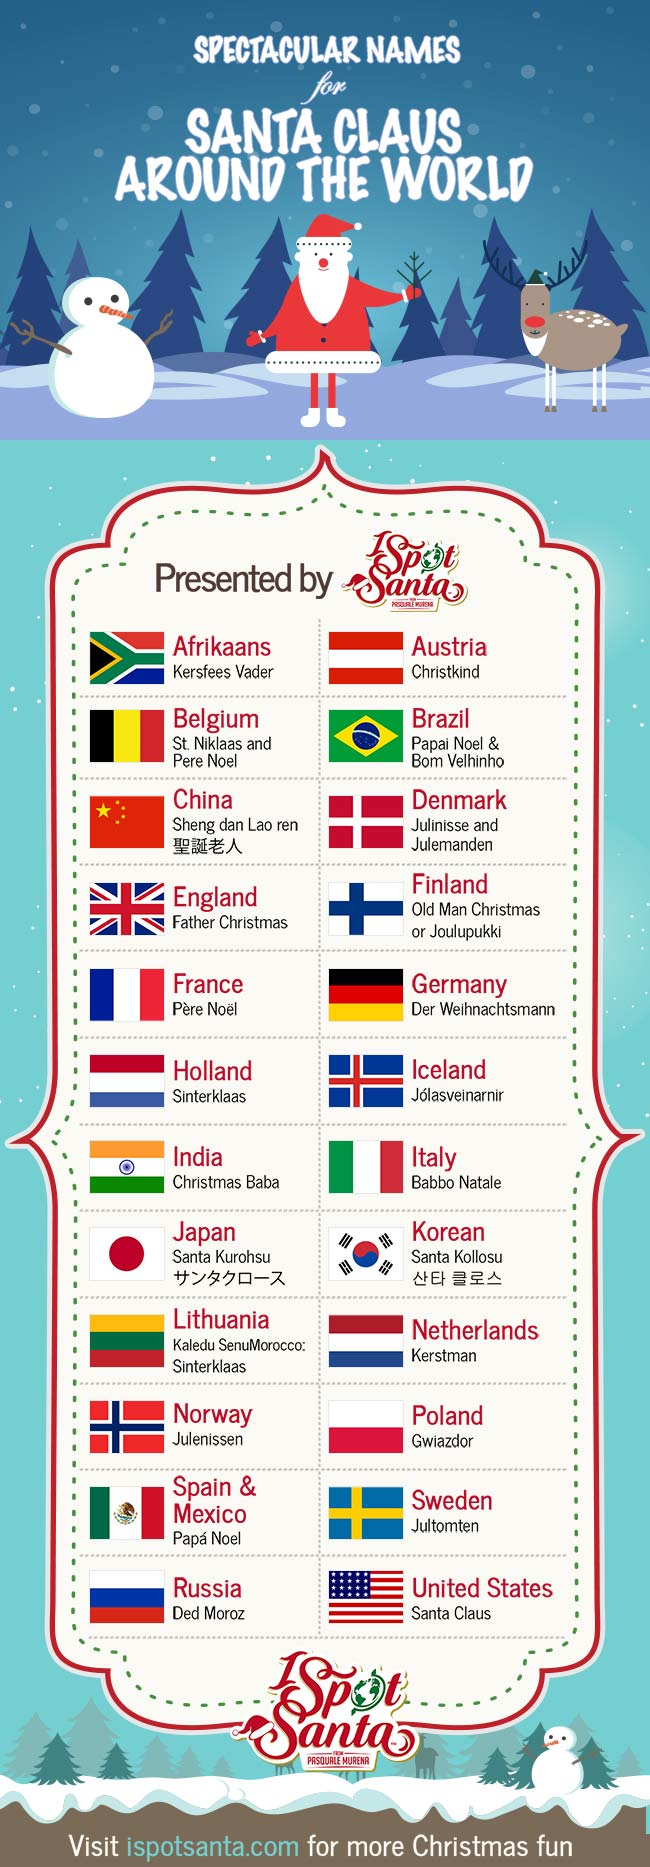 Santa Names Around The World